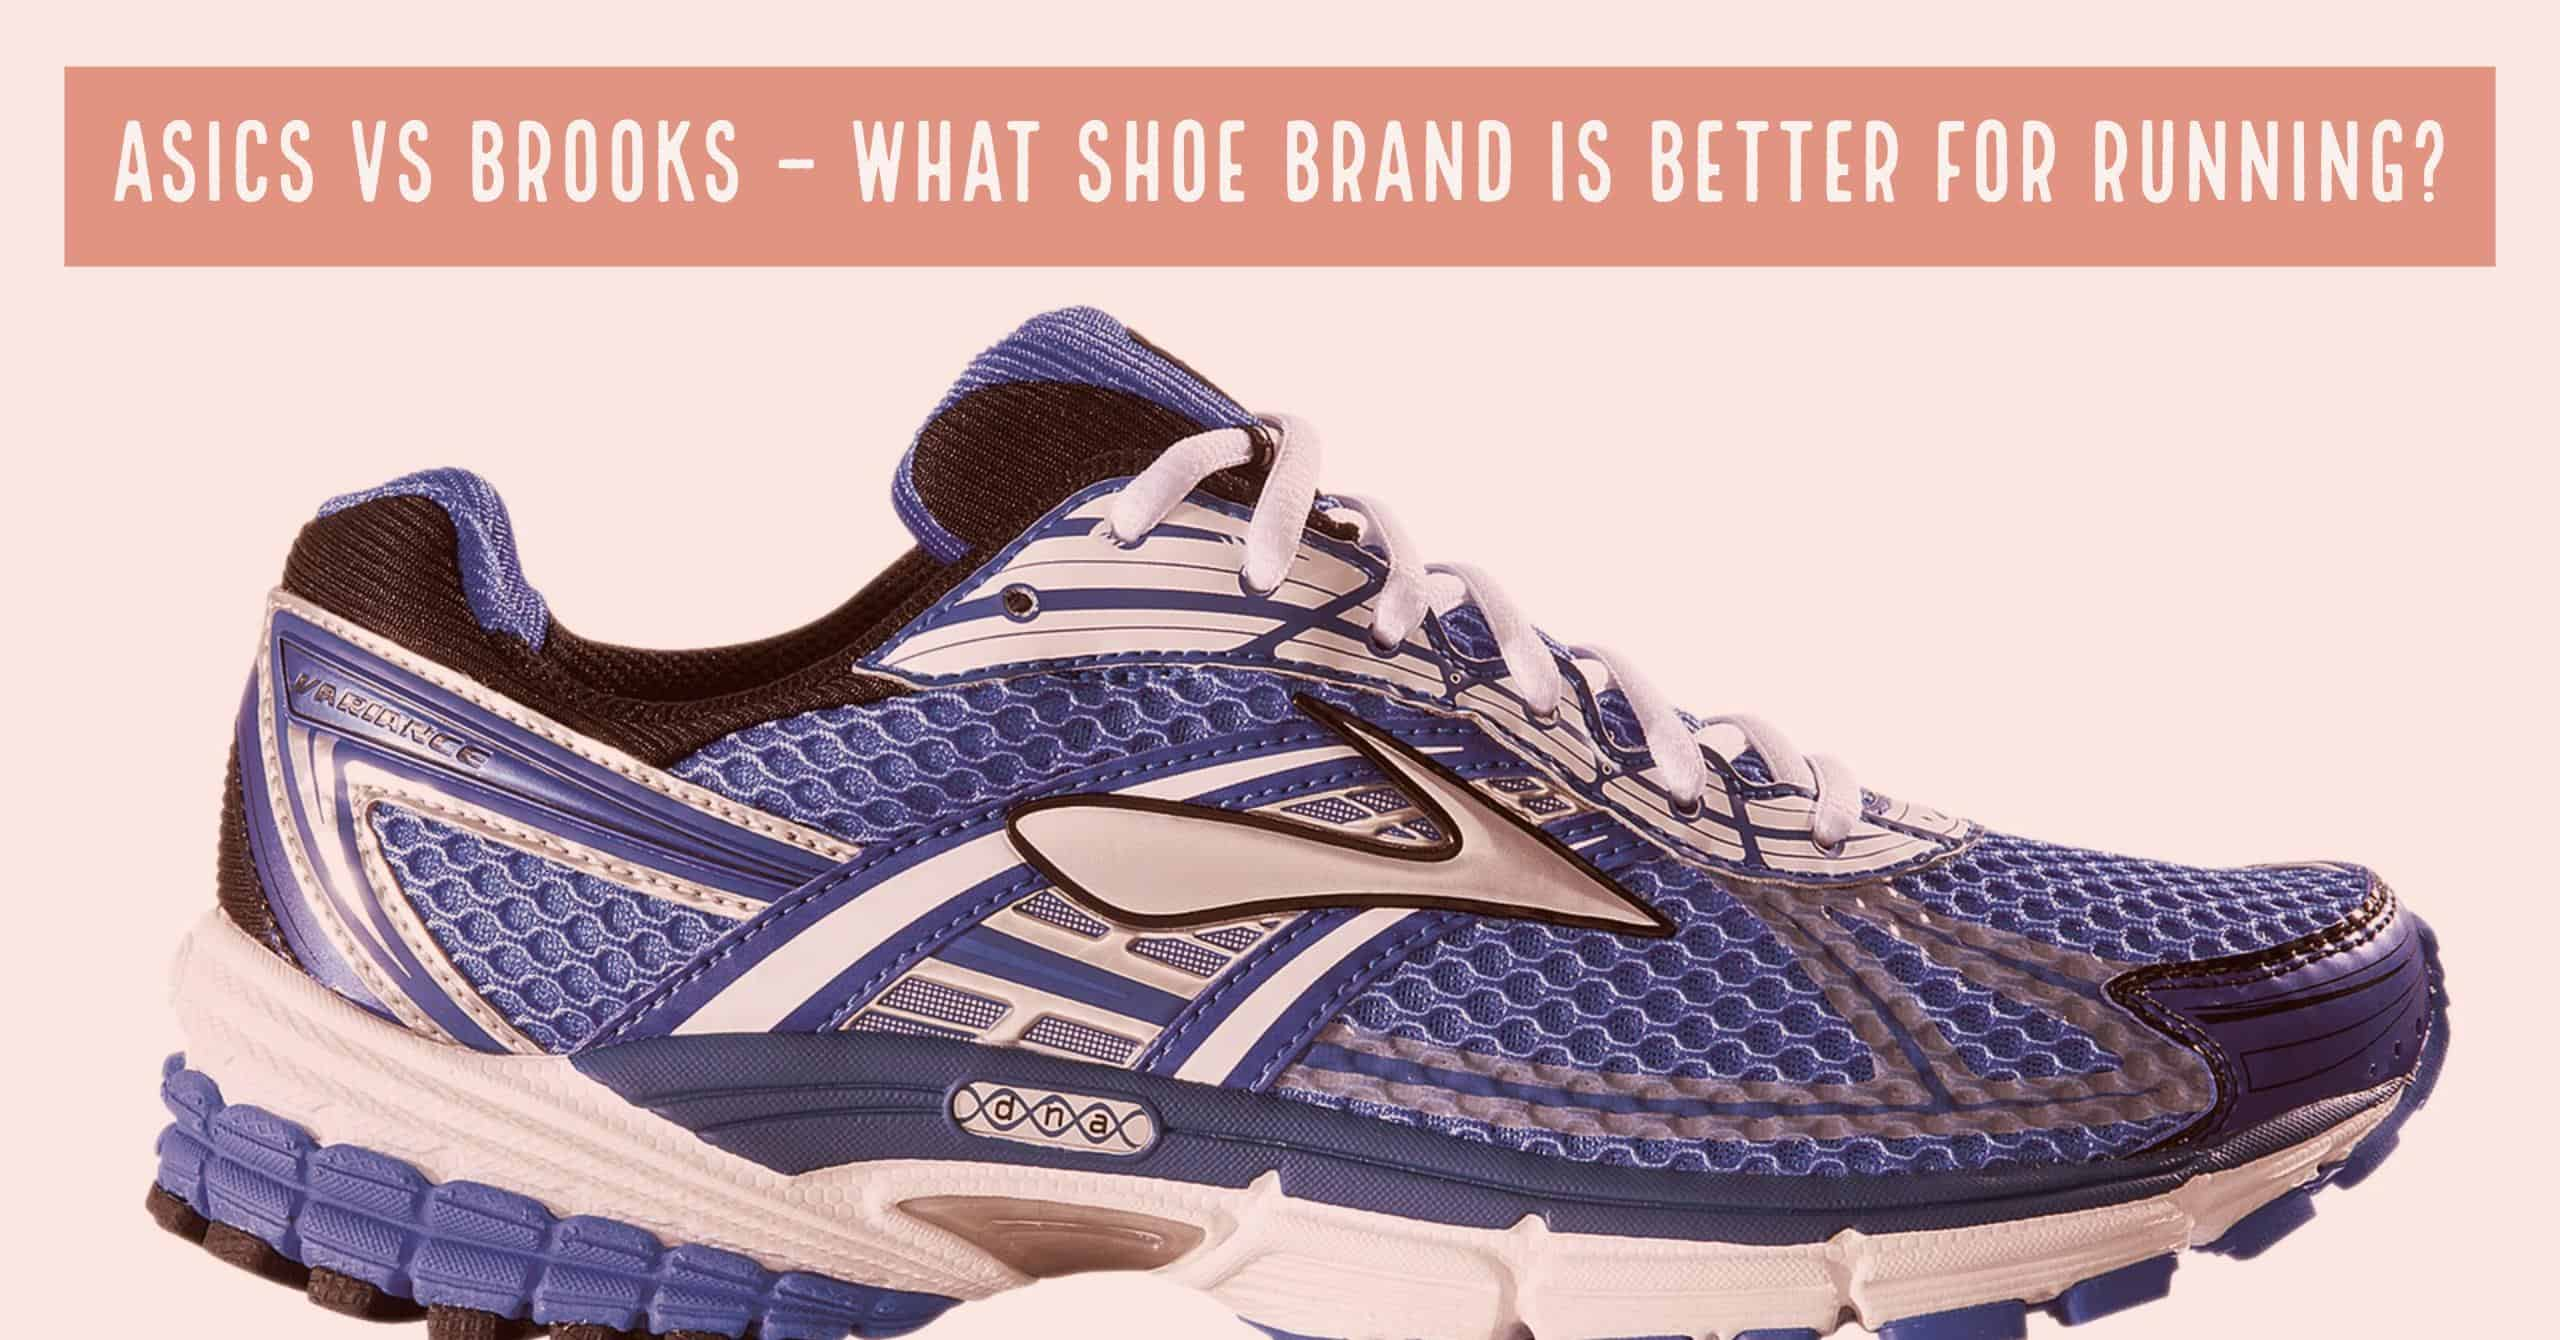 7f0cbca27351f Asics Vs Brooks – What Shoe is Better for Running  - Train for a 5K.com